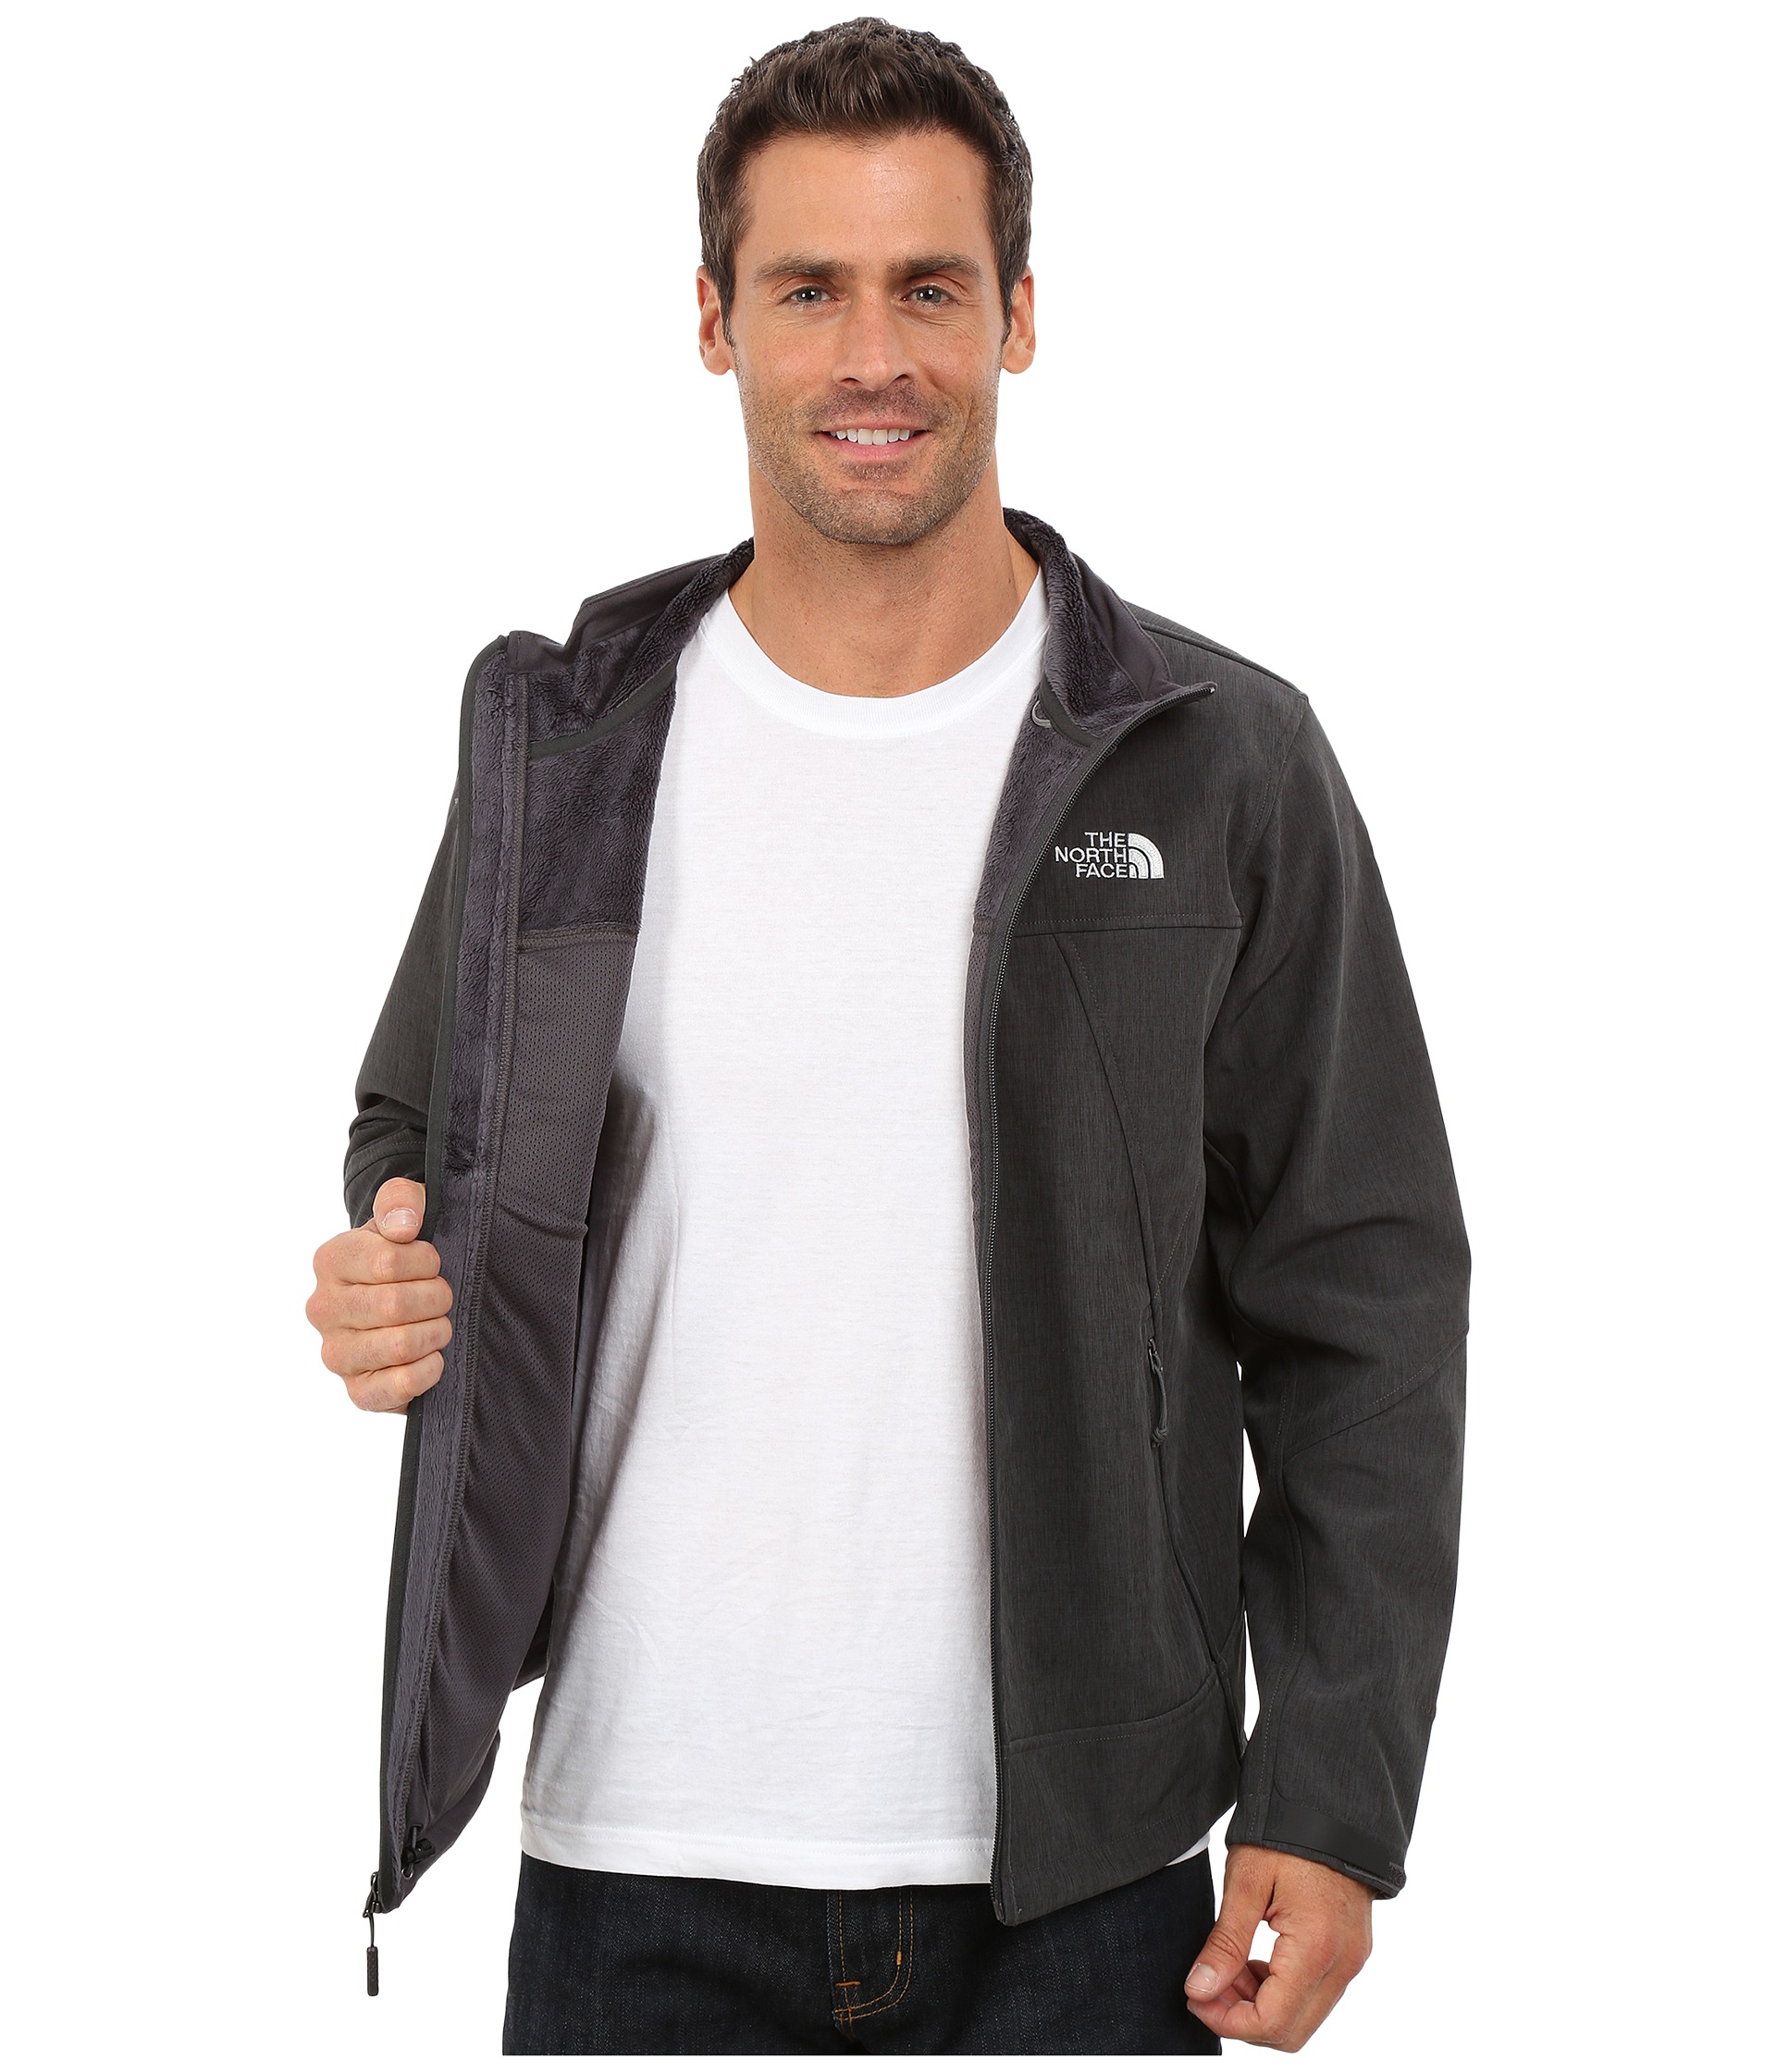 278599116 The North Face Black Apex Chromium Thermal Jacket for men